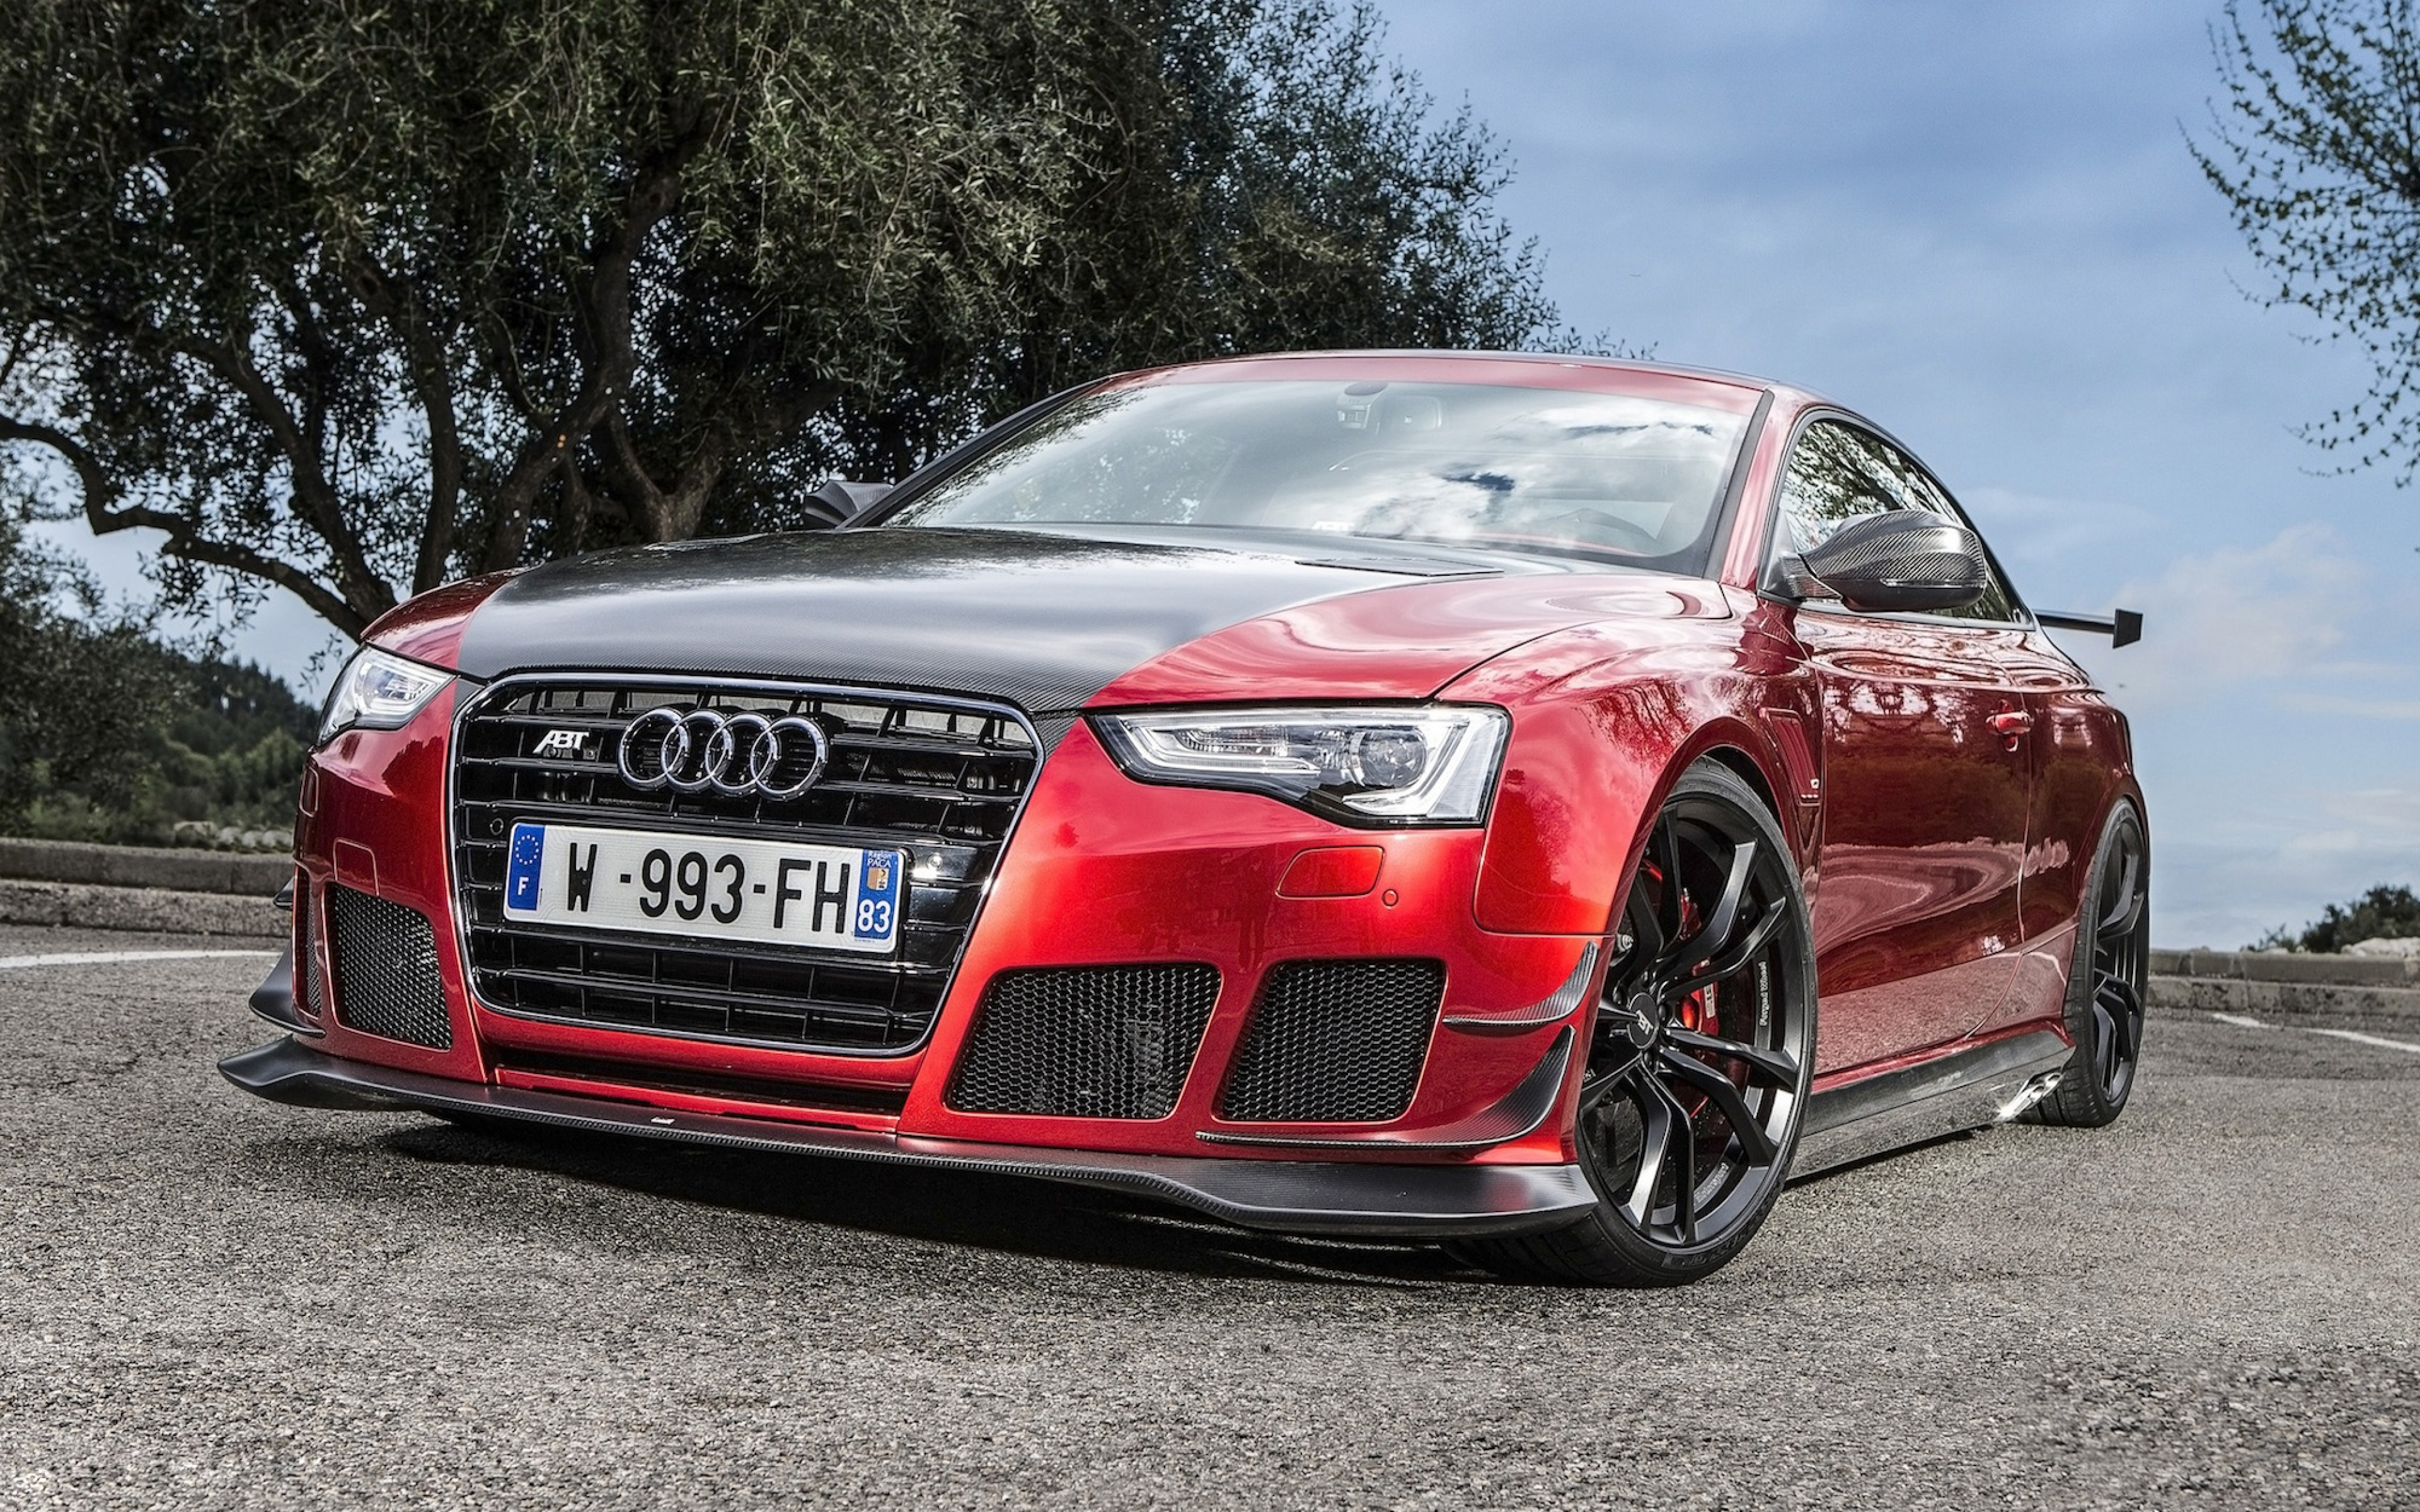 Audi Rs5 r Tuning Front view Wallpaper Background Ultra HD 4K 3840x2400